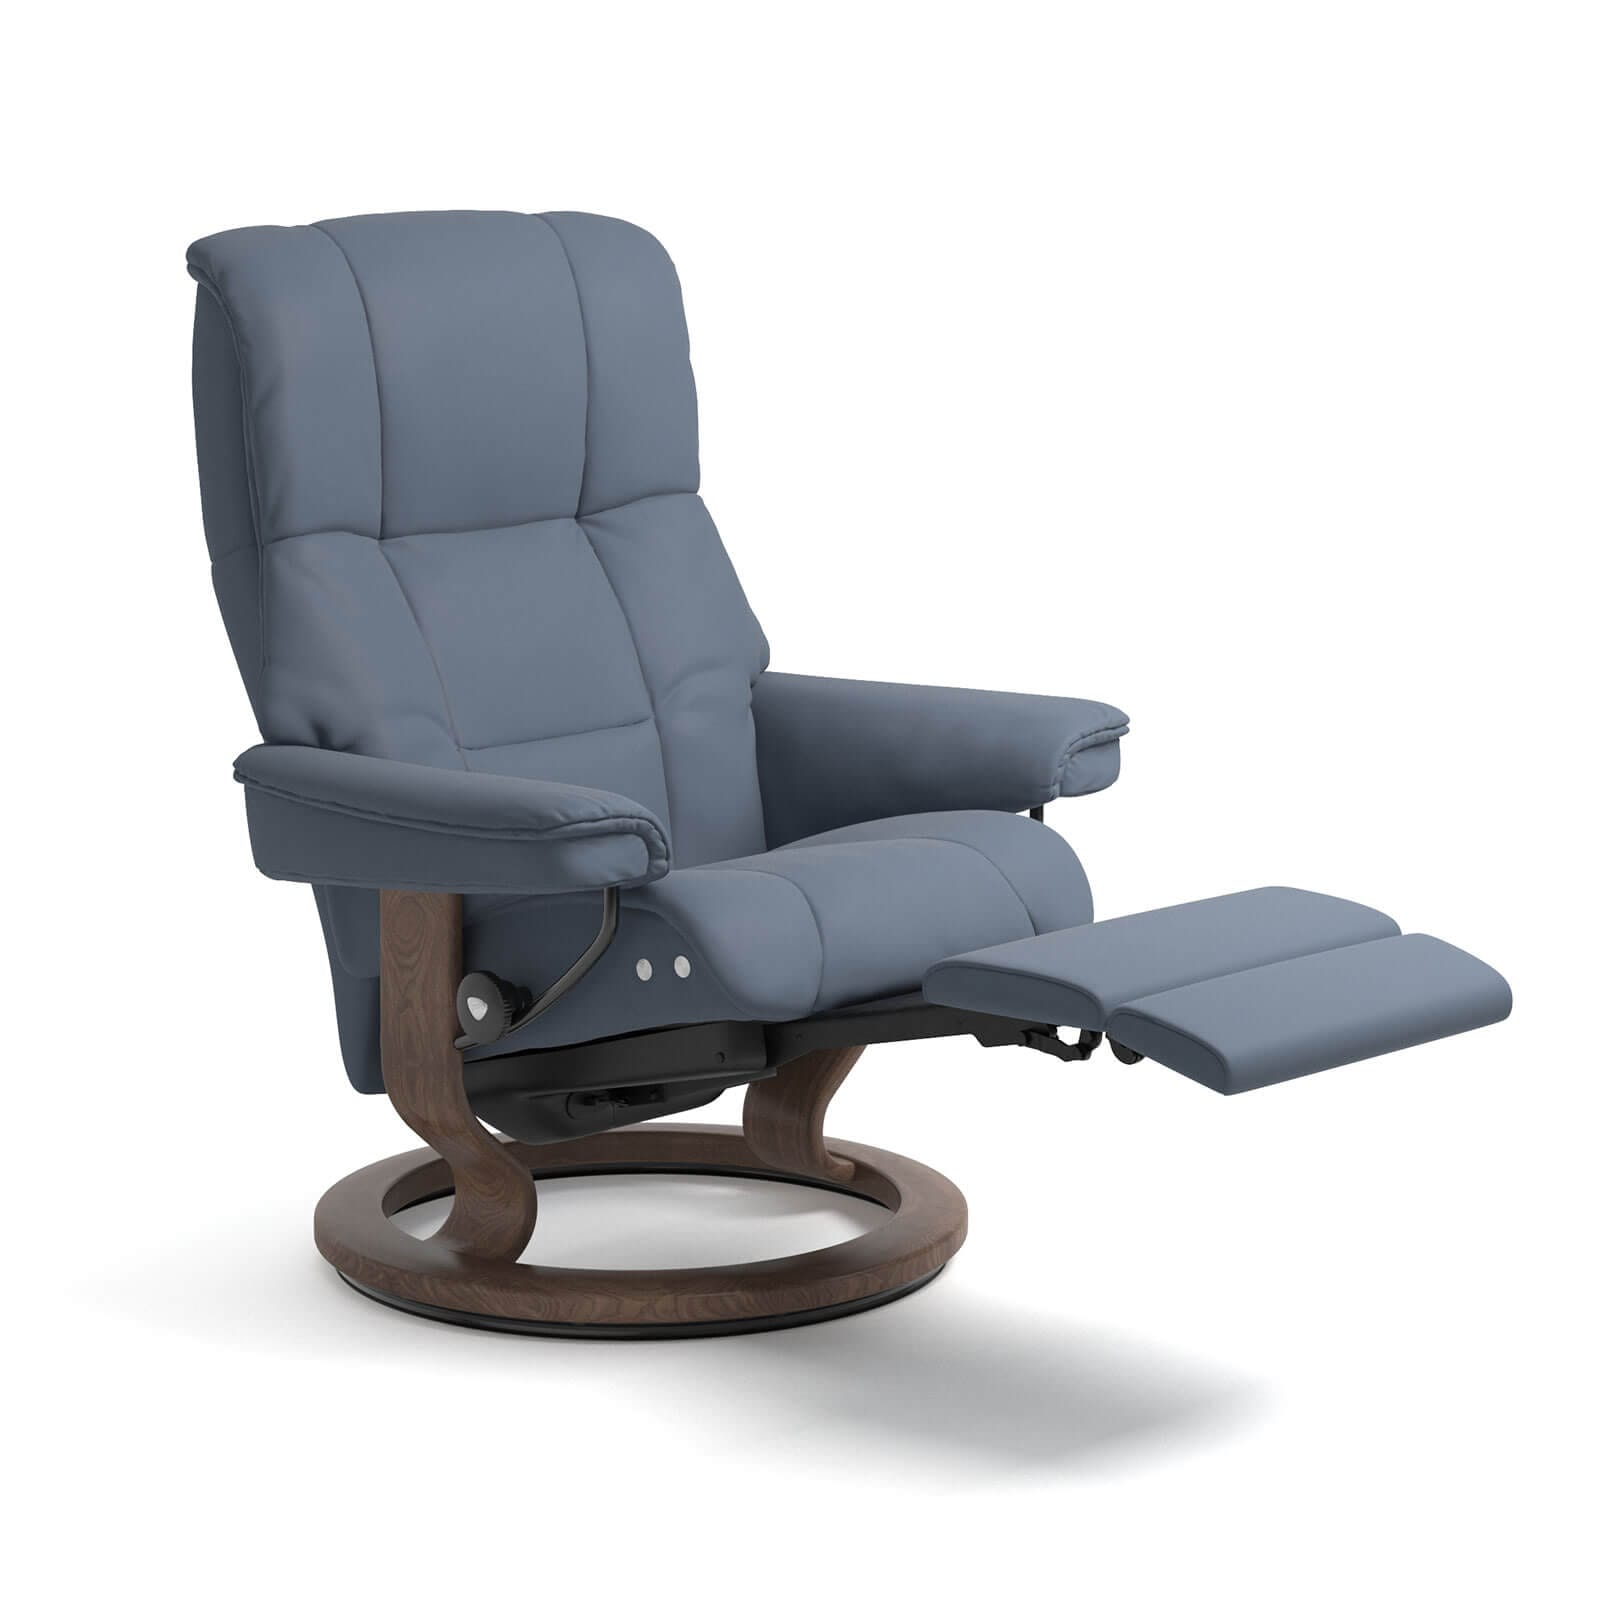 Relaxsessel Blau Stressless Sessel Mayfair Legcomfort Leder Paloma In Sparrow Blue Gestell Walnuss